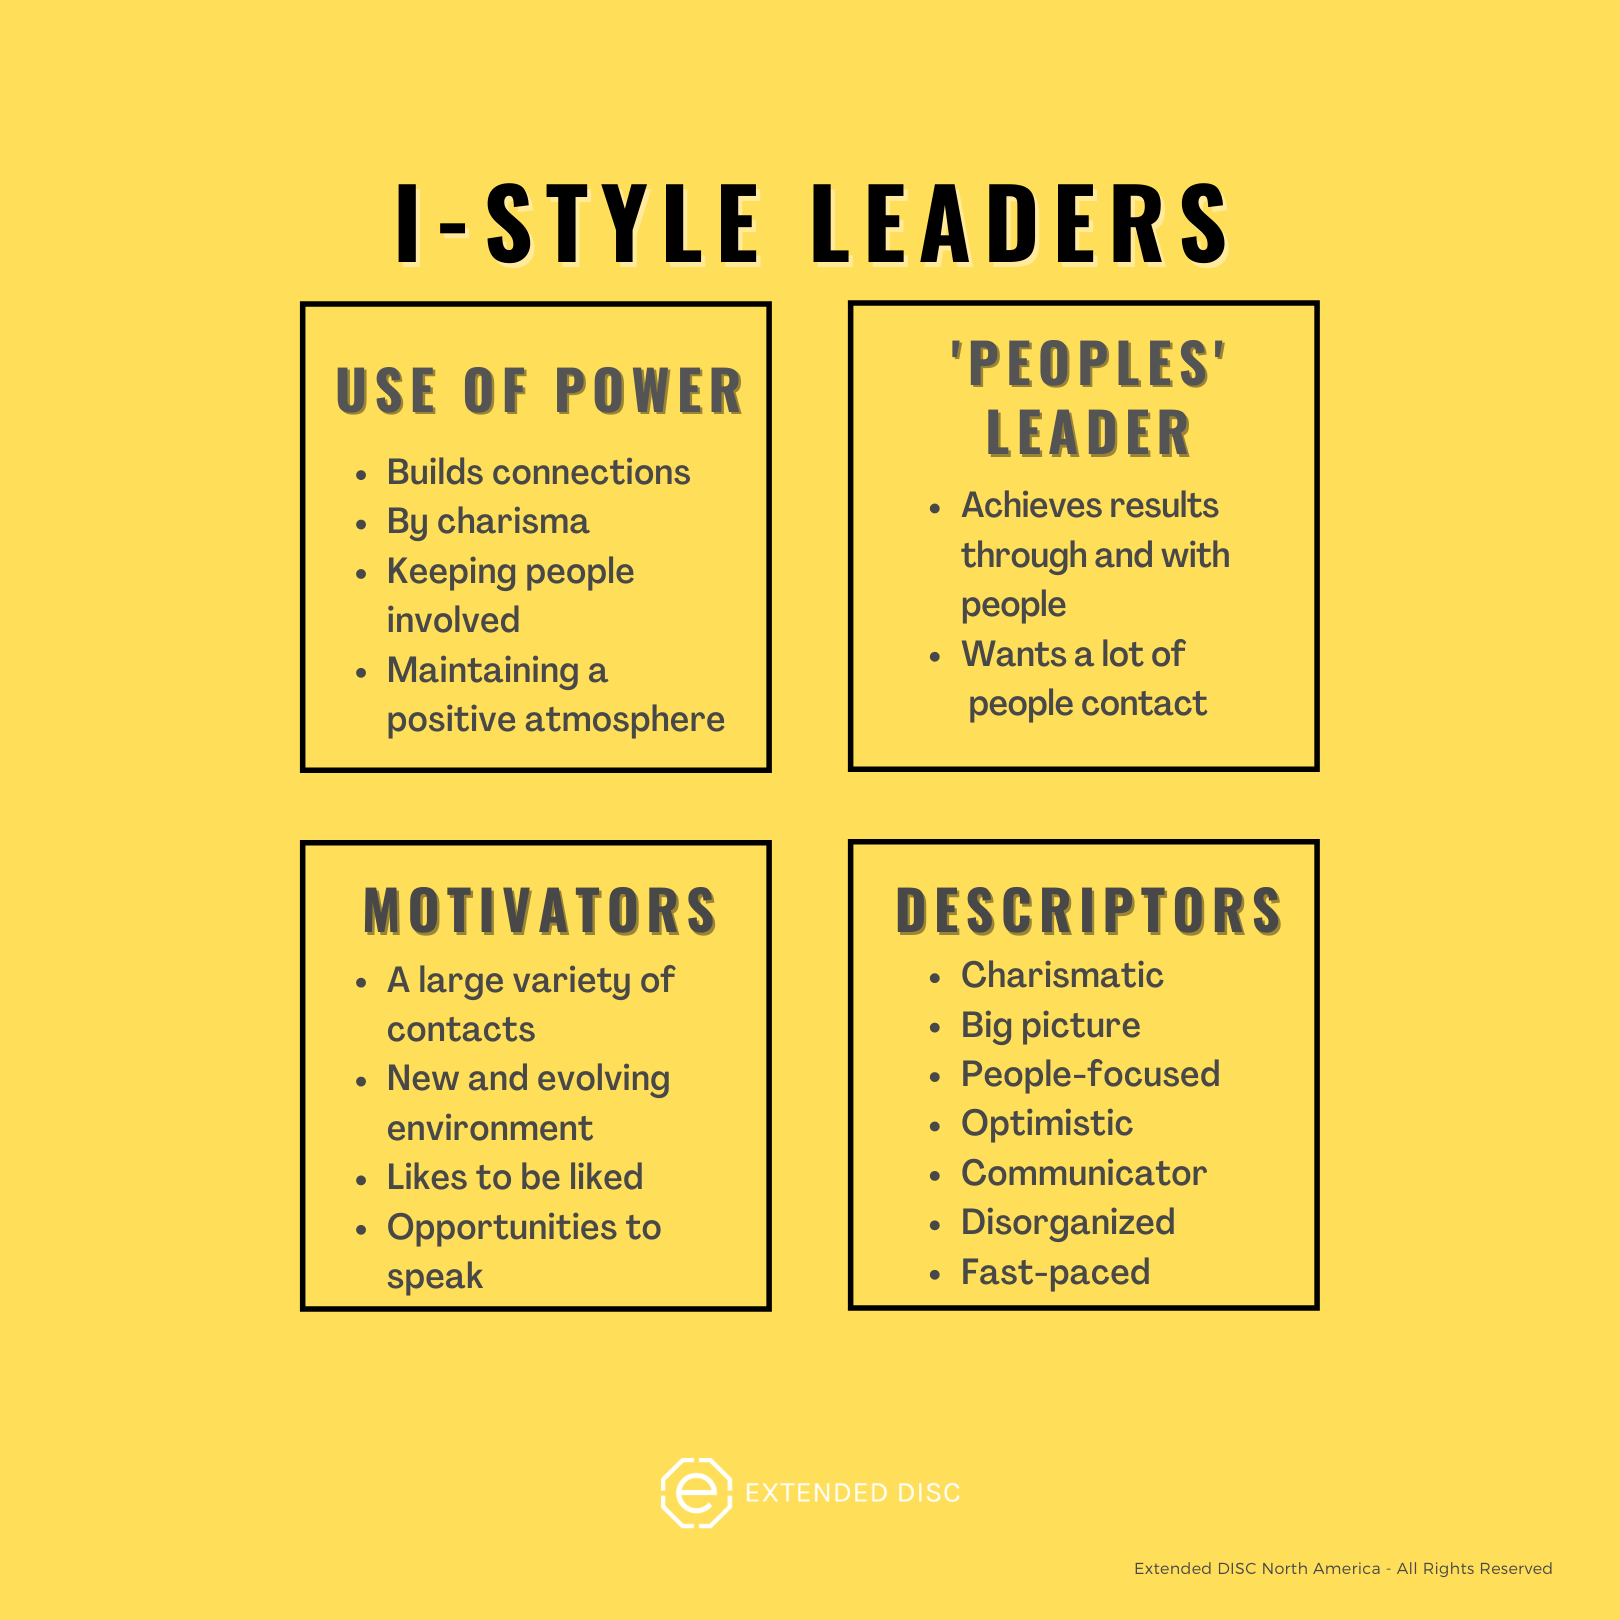 I-Style leaders